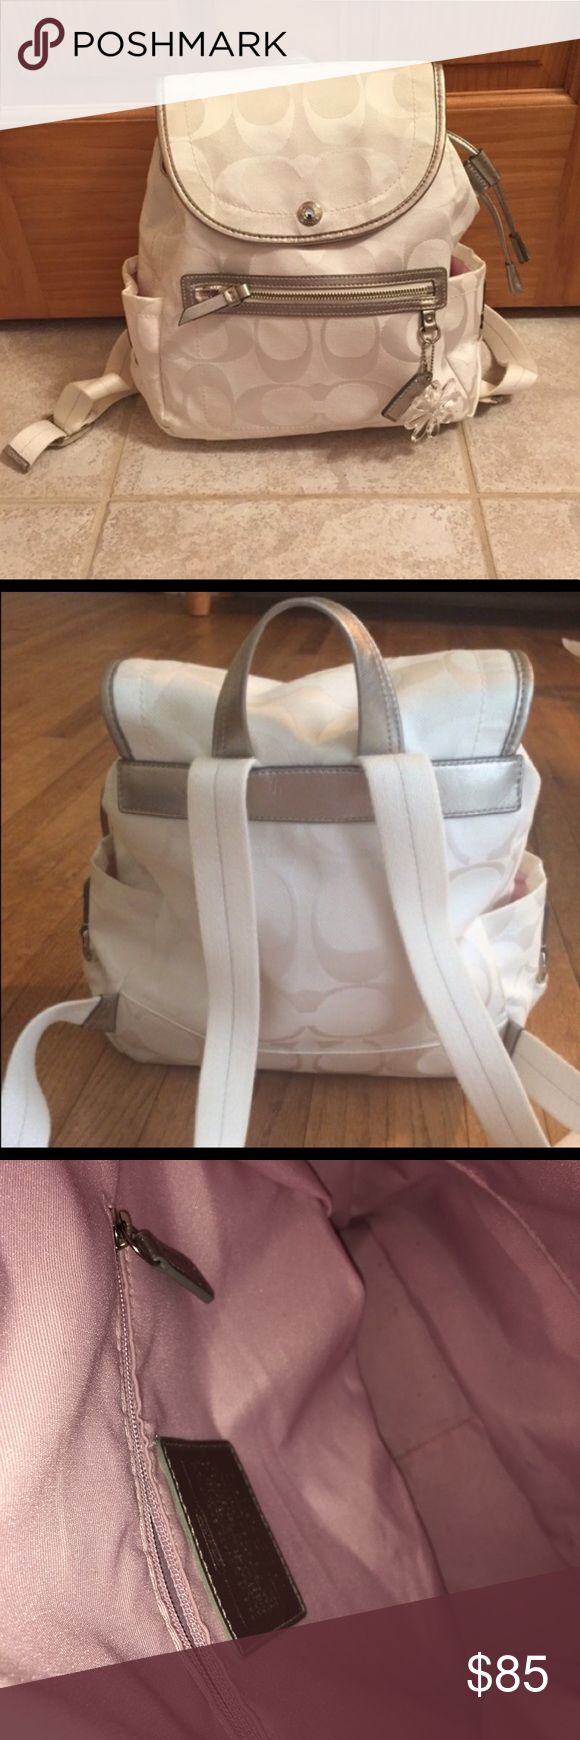 Coach backpack Perfect condition! Does not come with flower chain but does come with the coach chain! Coach Bags Backpacks